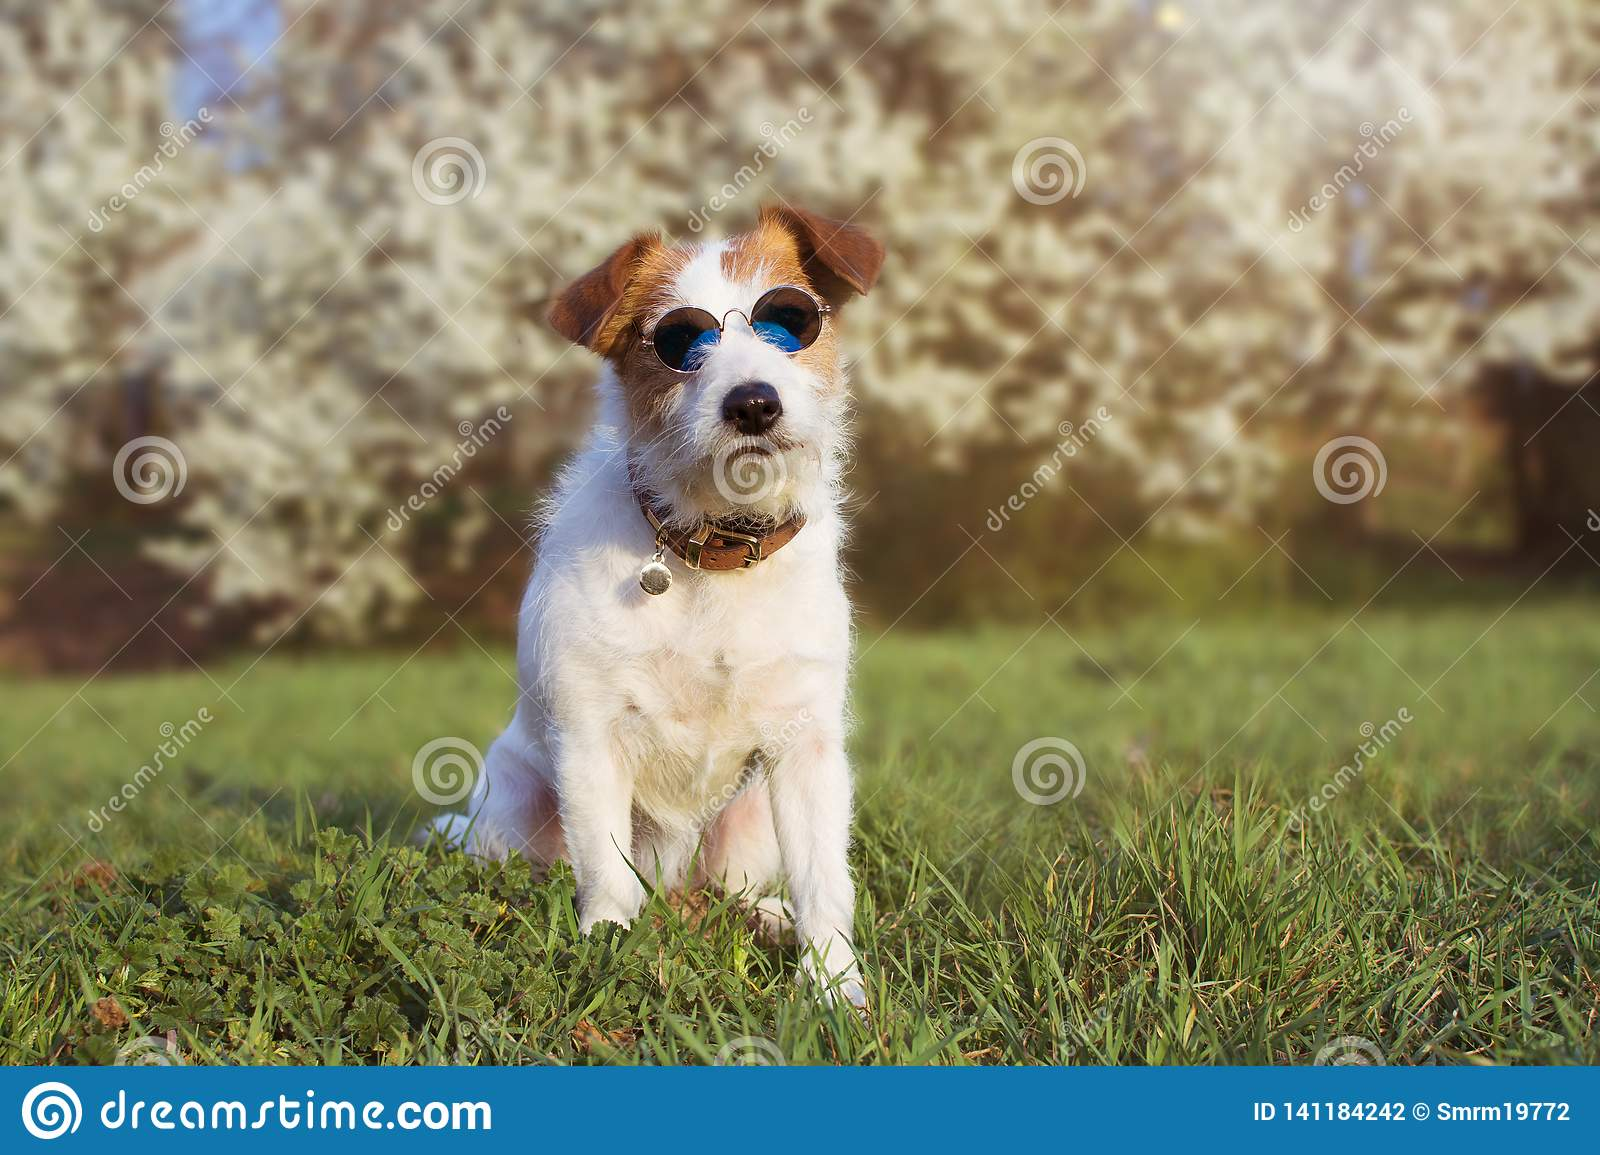 PORTRAIT CUTE JACK RUSSELL DOG WEARING SUMMER GLASSES AGAINST FLORAL SRPING BACKGROUND